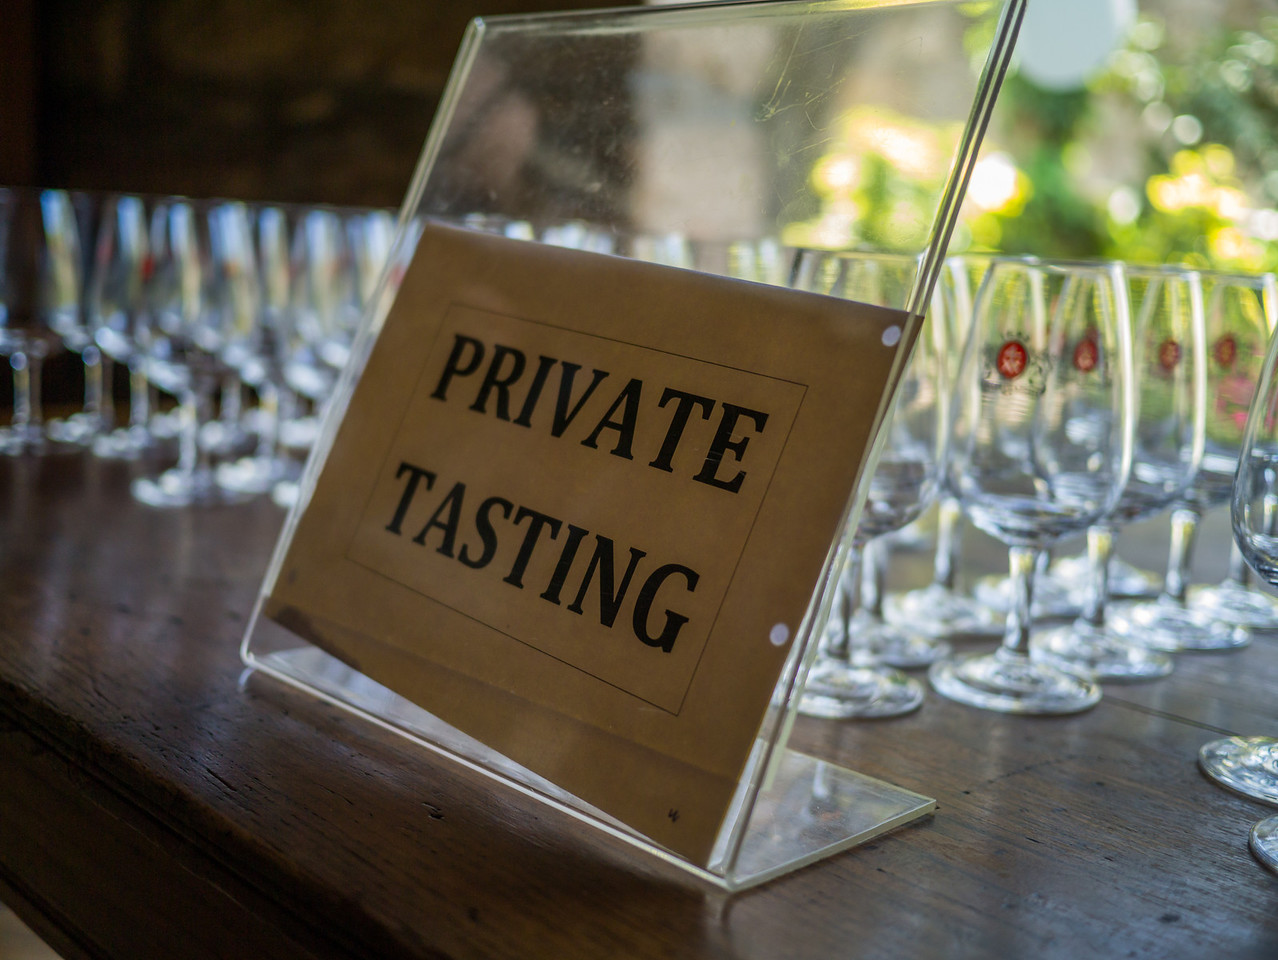 Our private tasting table